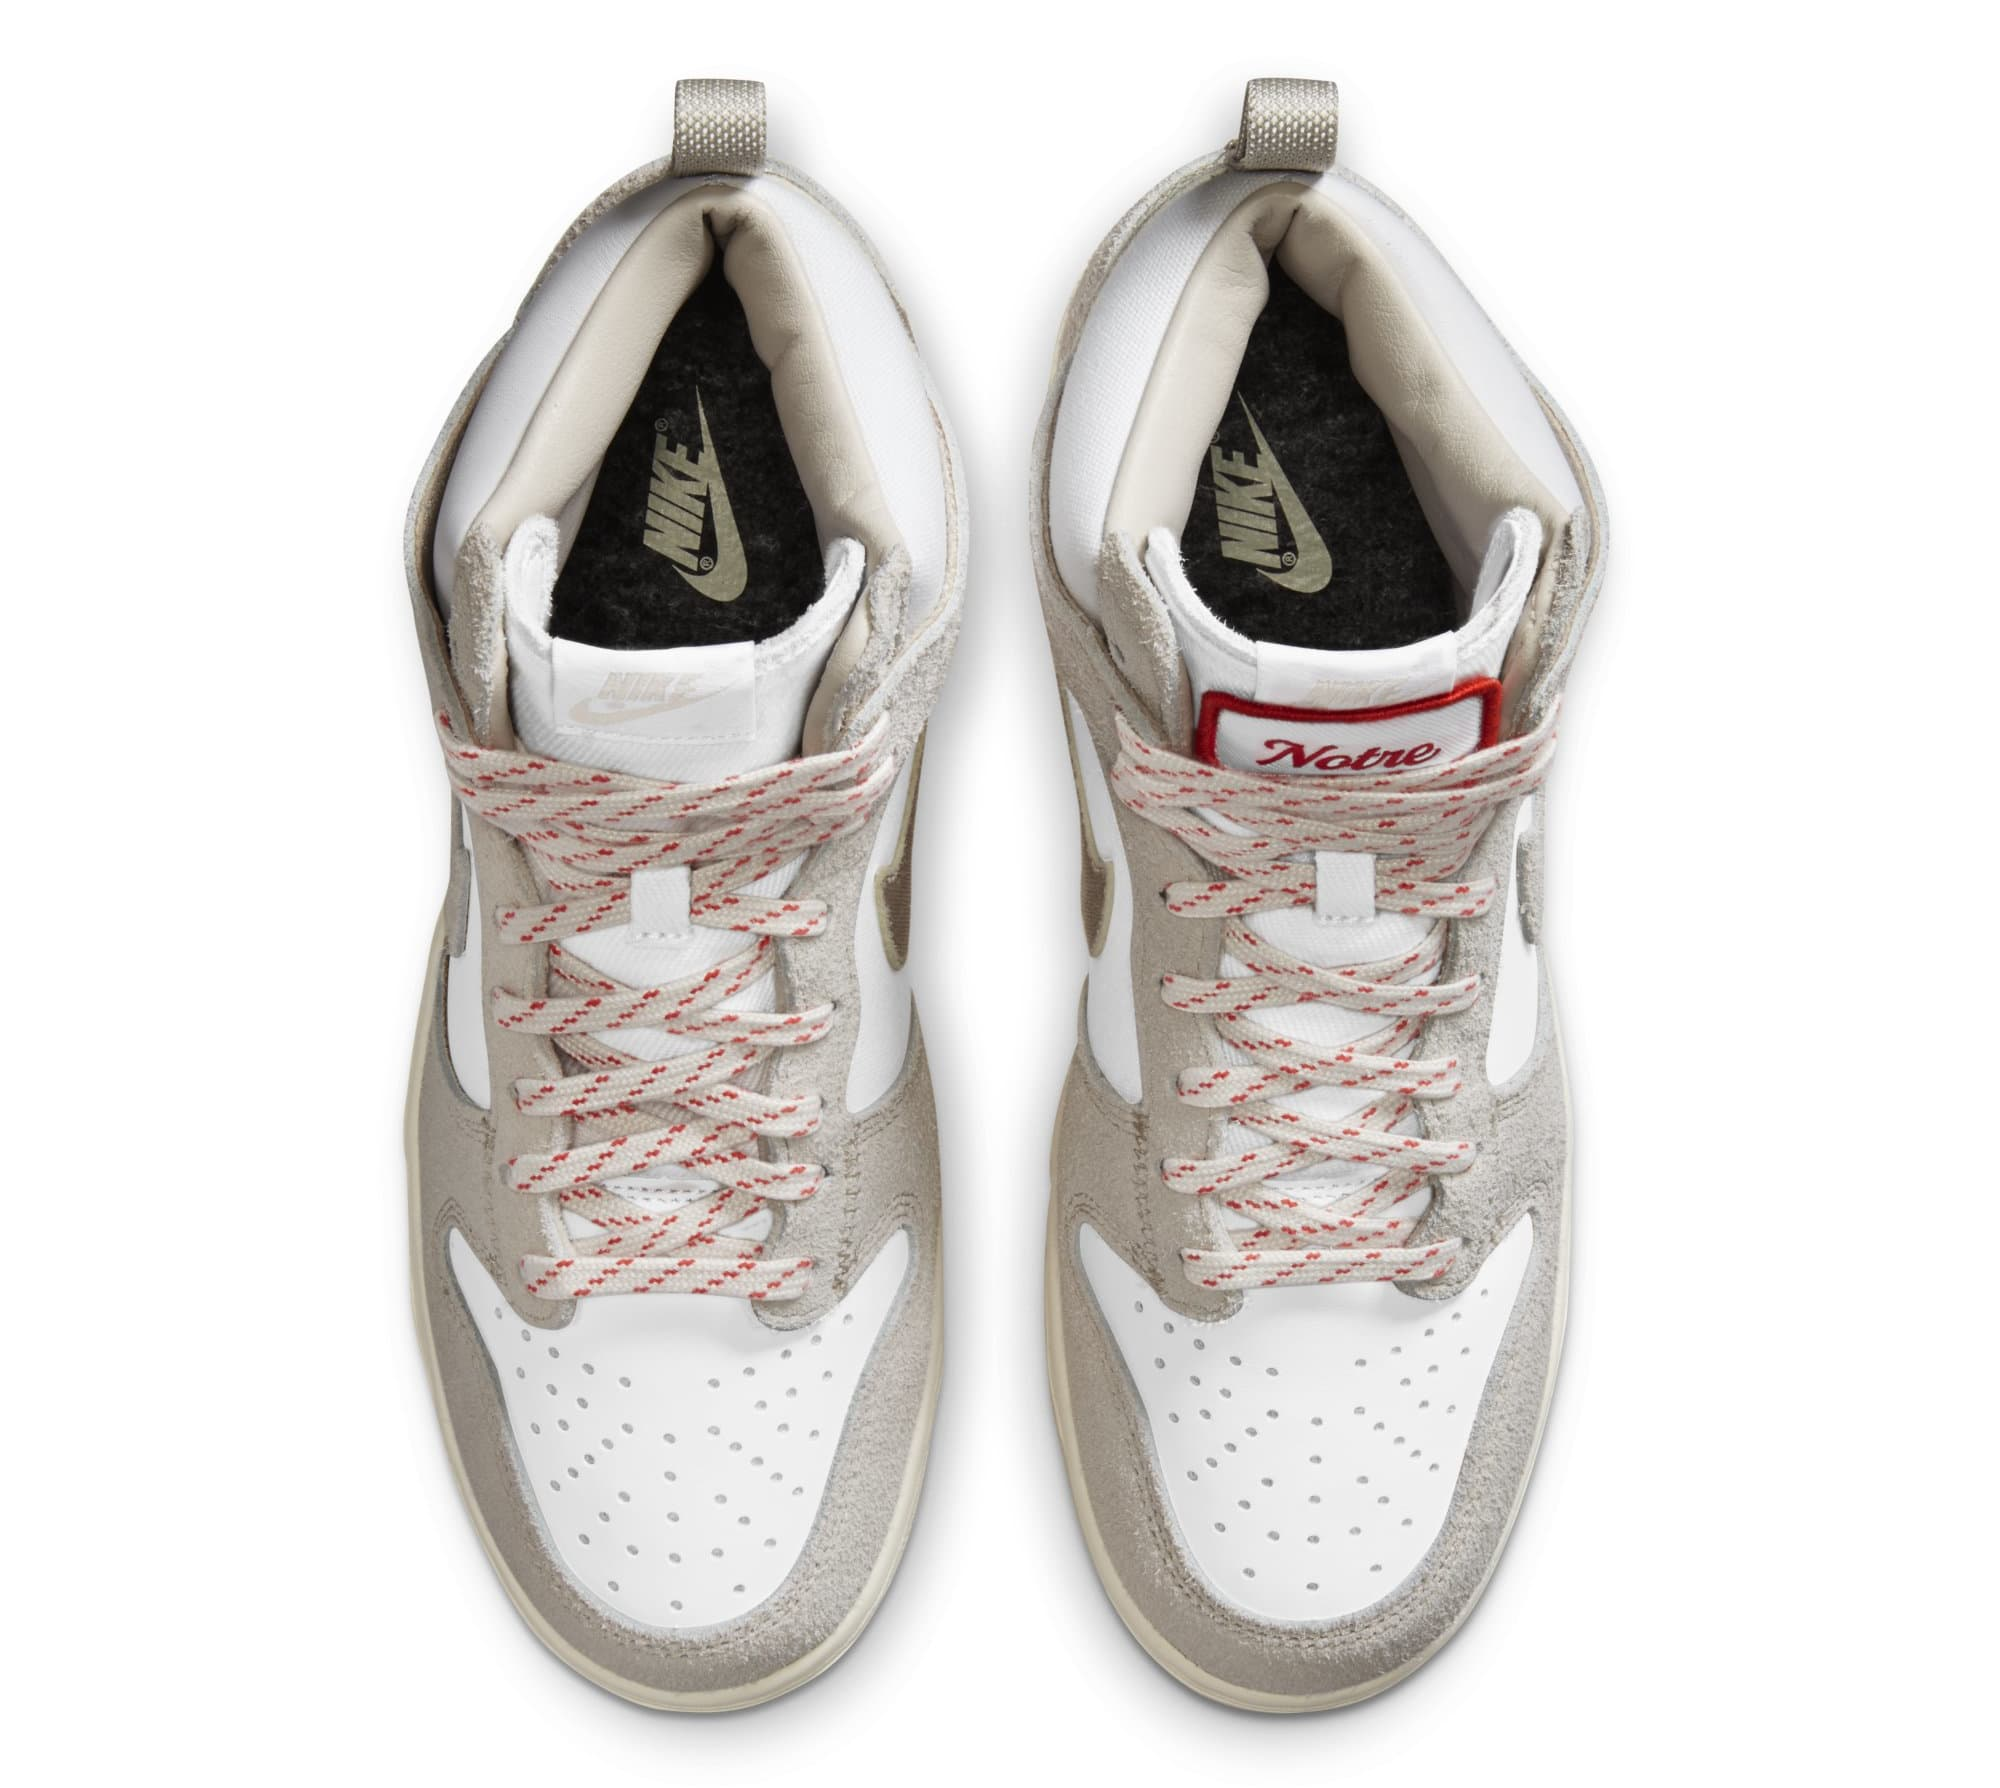 Notre x Nike Dunk High 'Light Orewood Brown/White' (Top)